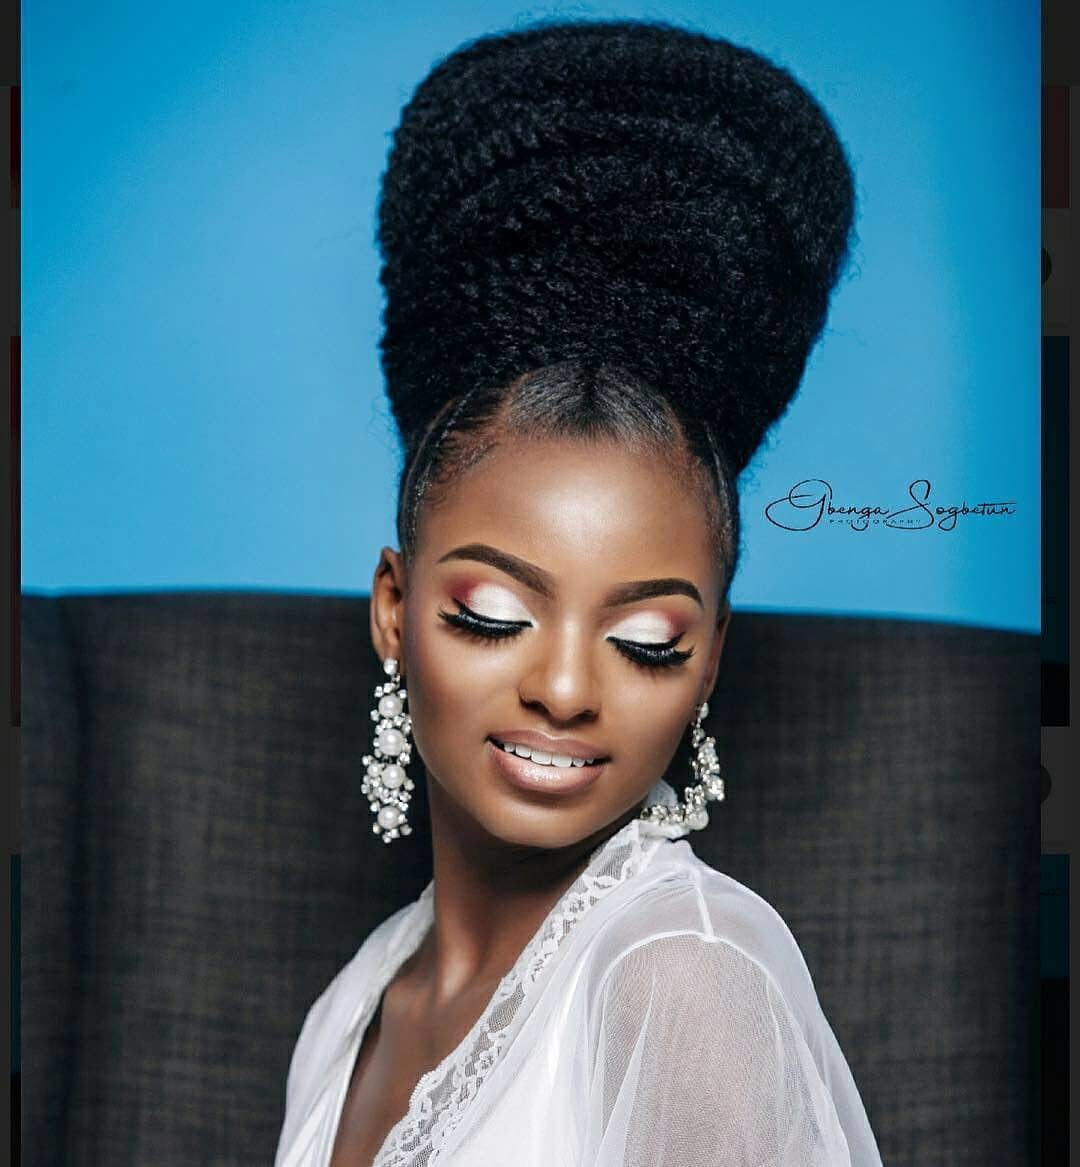 Big Wedding Hair: This Beauty Look With A Big Bun Is Just Right For A